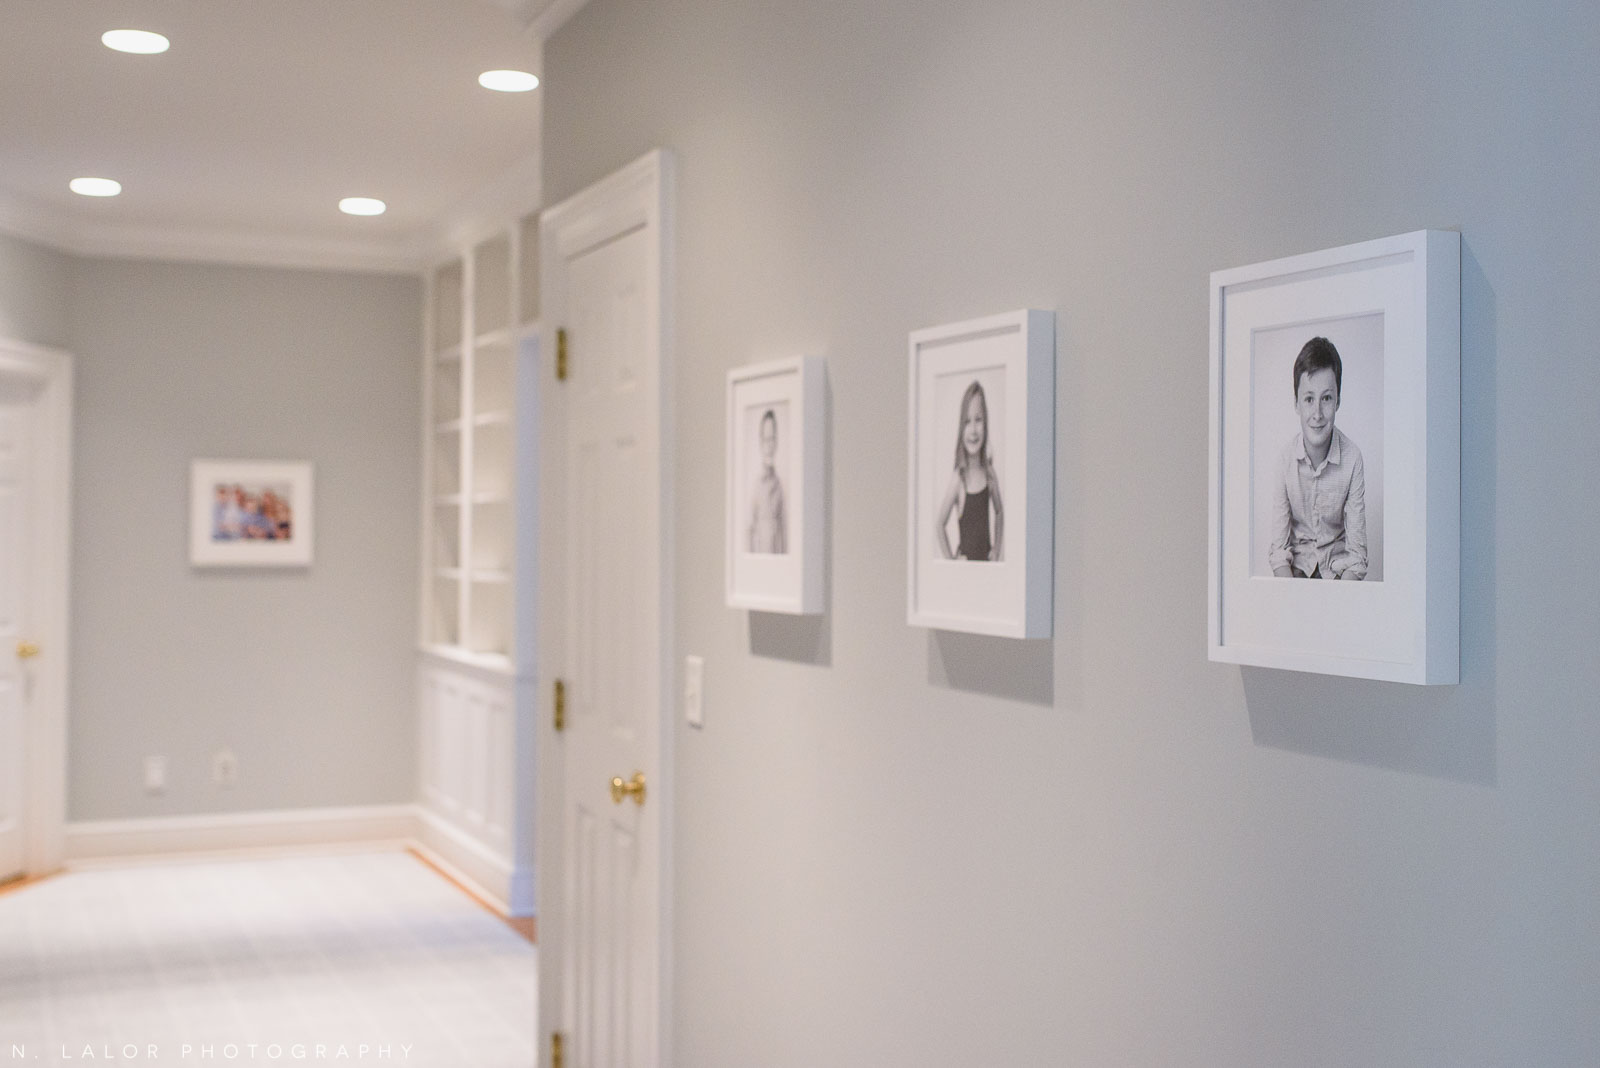 Image of a wall of framed family photographs. Photos by N. Lalor Photography, Studio located in Greenwich Connecticut.